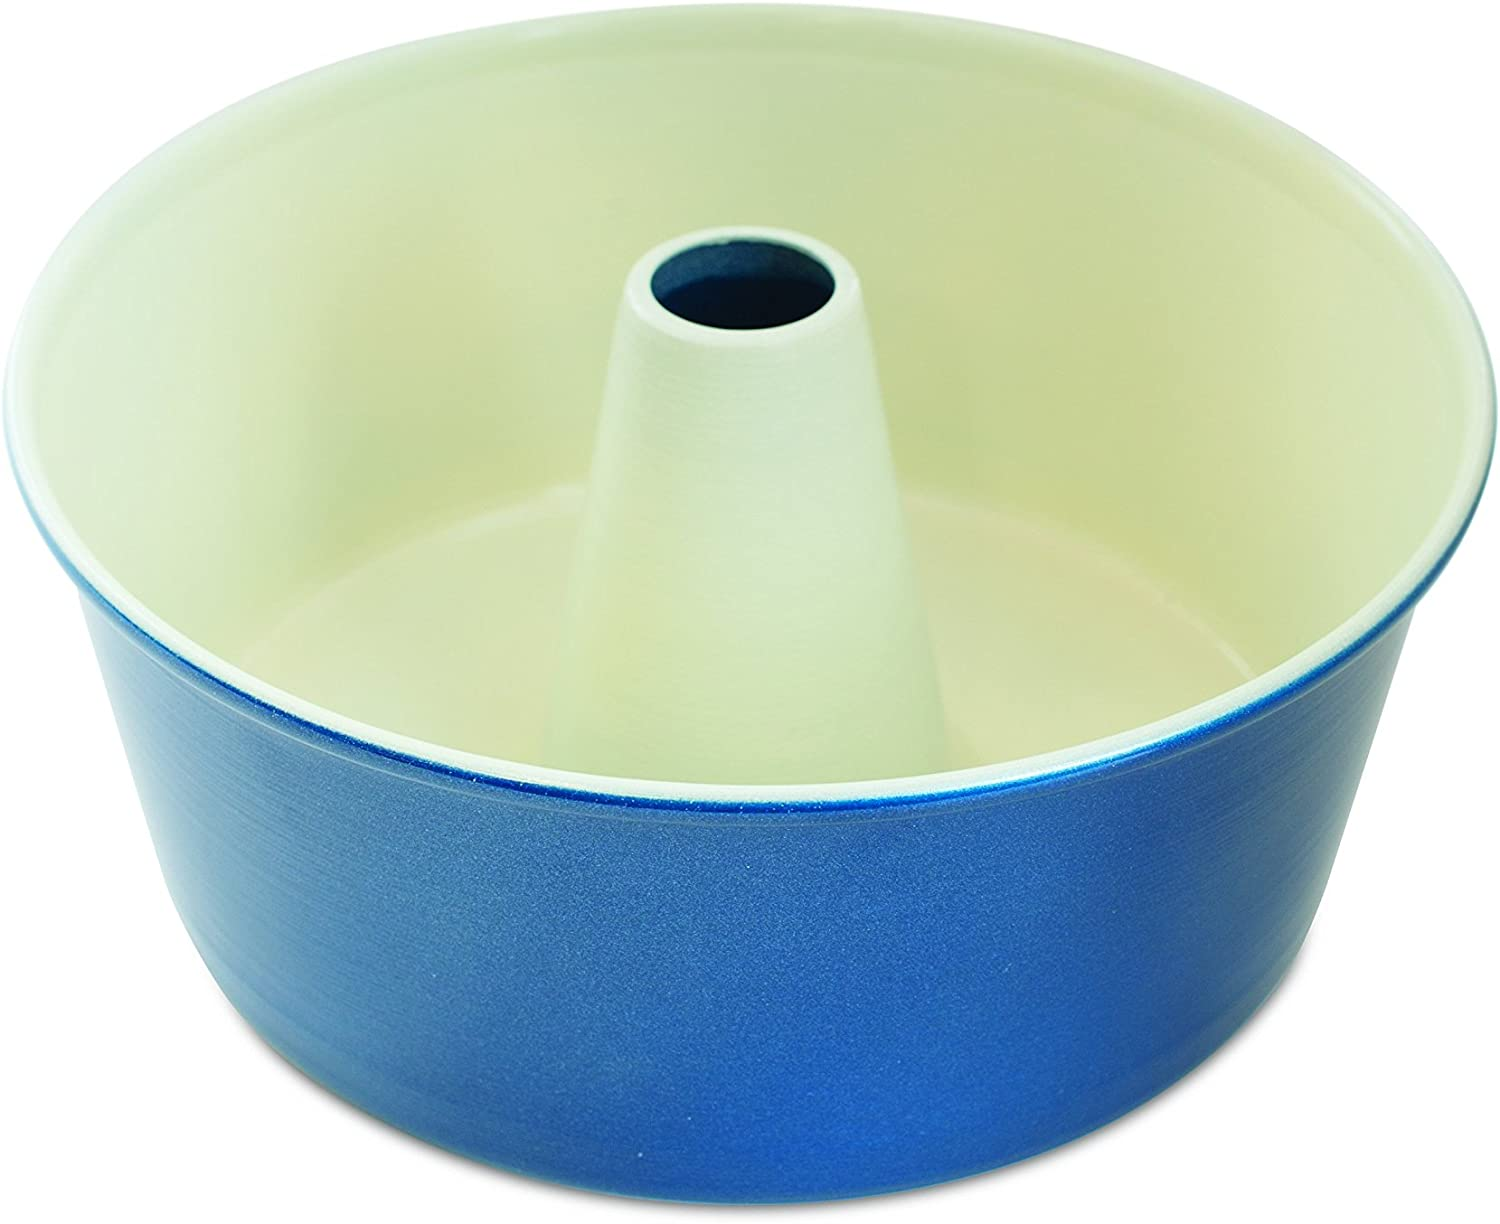 Nordic Ware 50919AMZ 12-Cup Angel Food Cake Pan, Navy